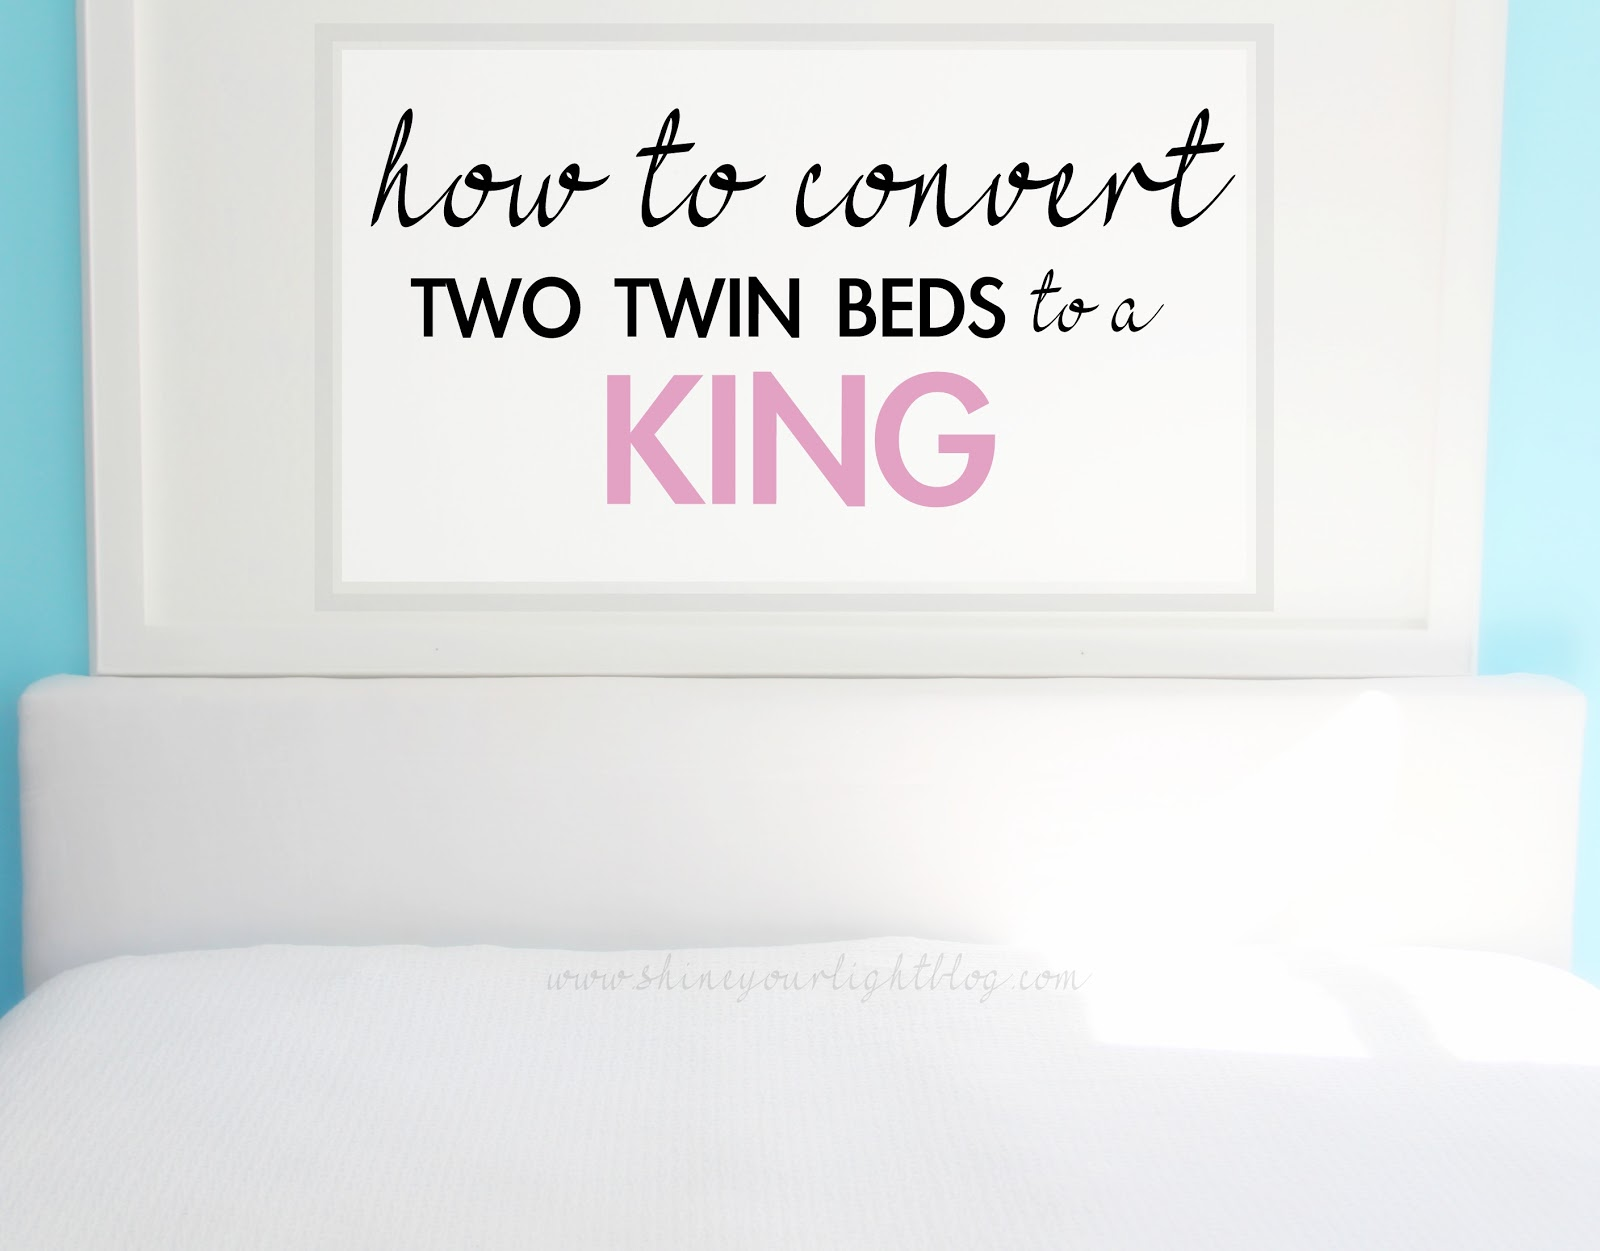 are 2 twin beds equal to a king How To Convert Two Twin Beds To A King   Shine Your Light are 2 twin beds equal to a king